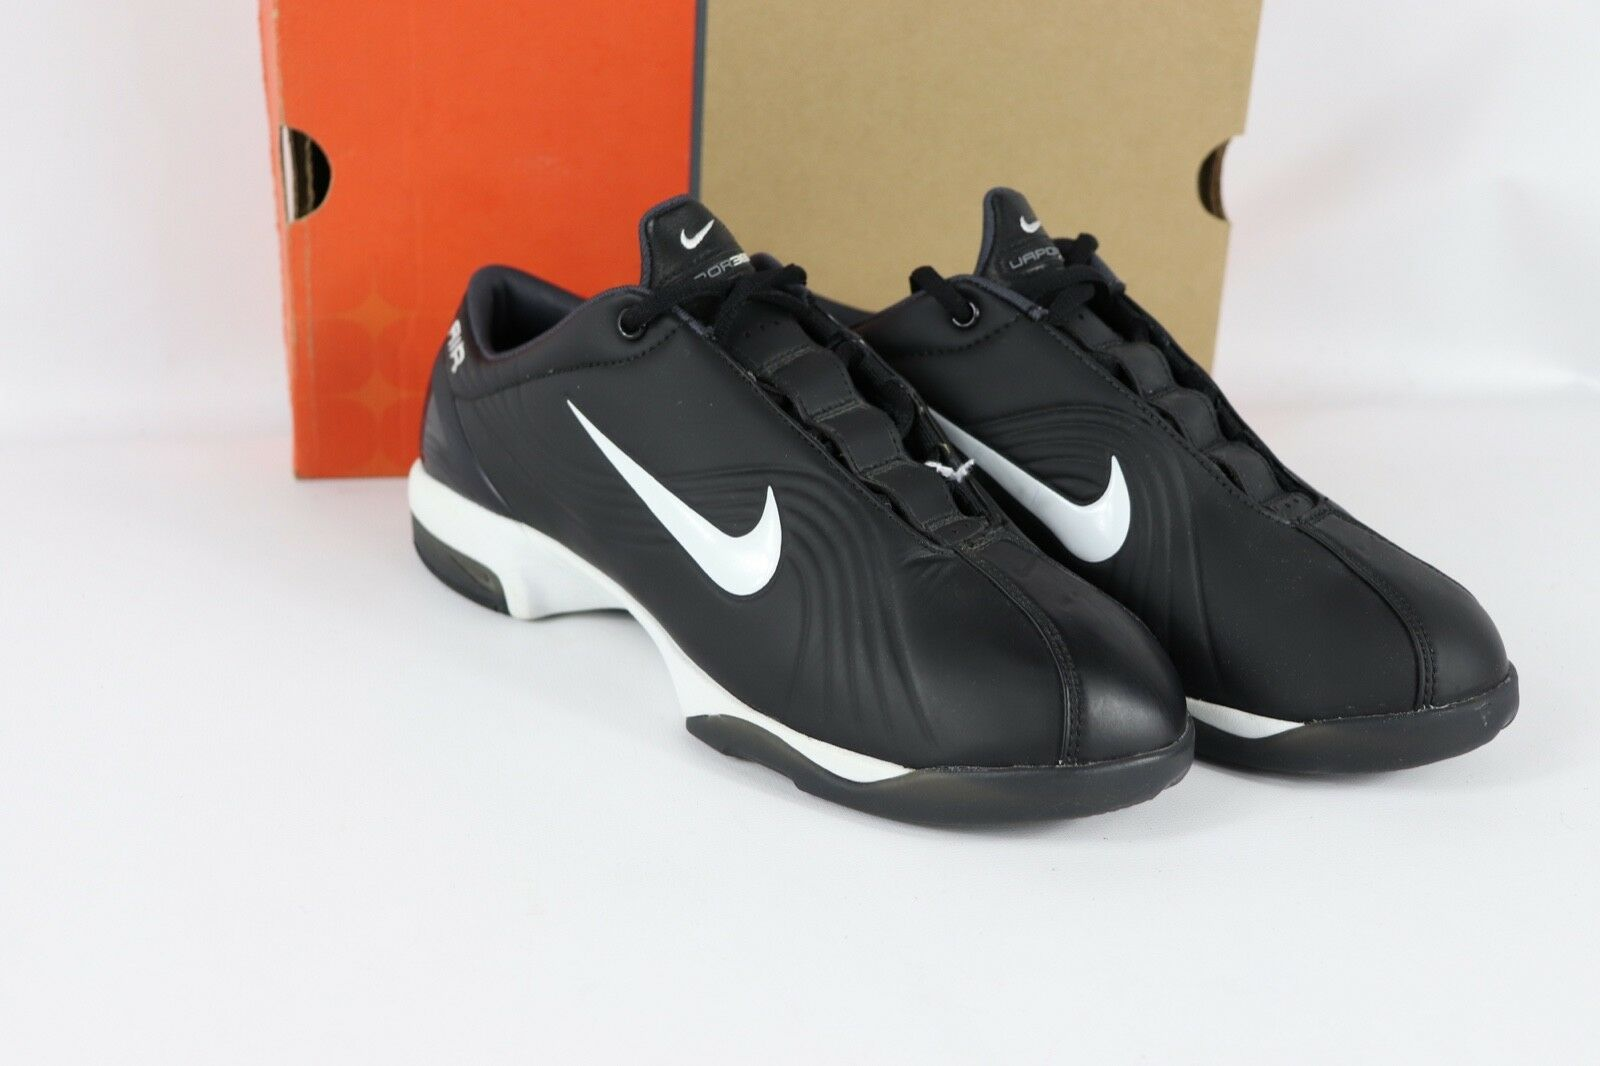 Vtg New New New Nike Mens 8.5 Air Mercurial Vapor 365 Indoor Soccer shoes Trainers Black aaa0de